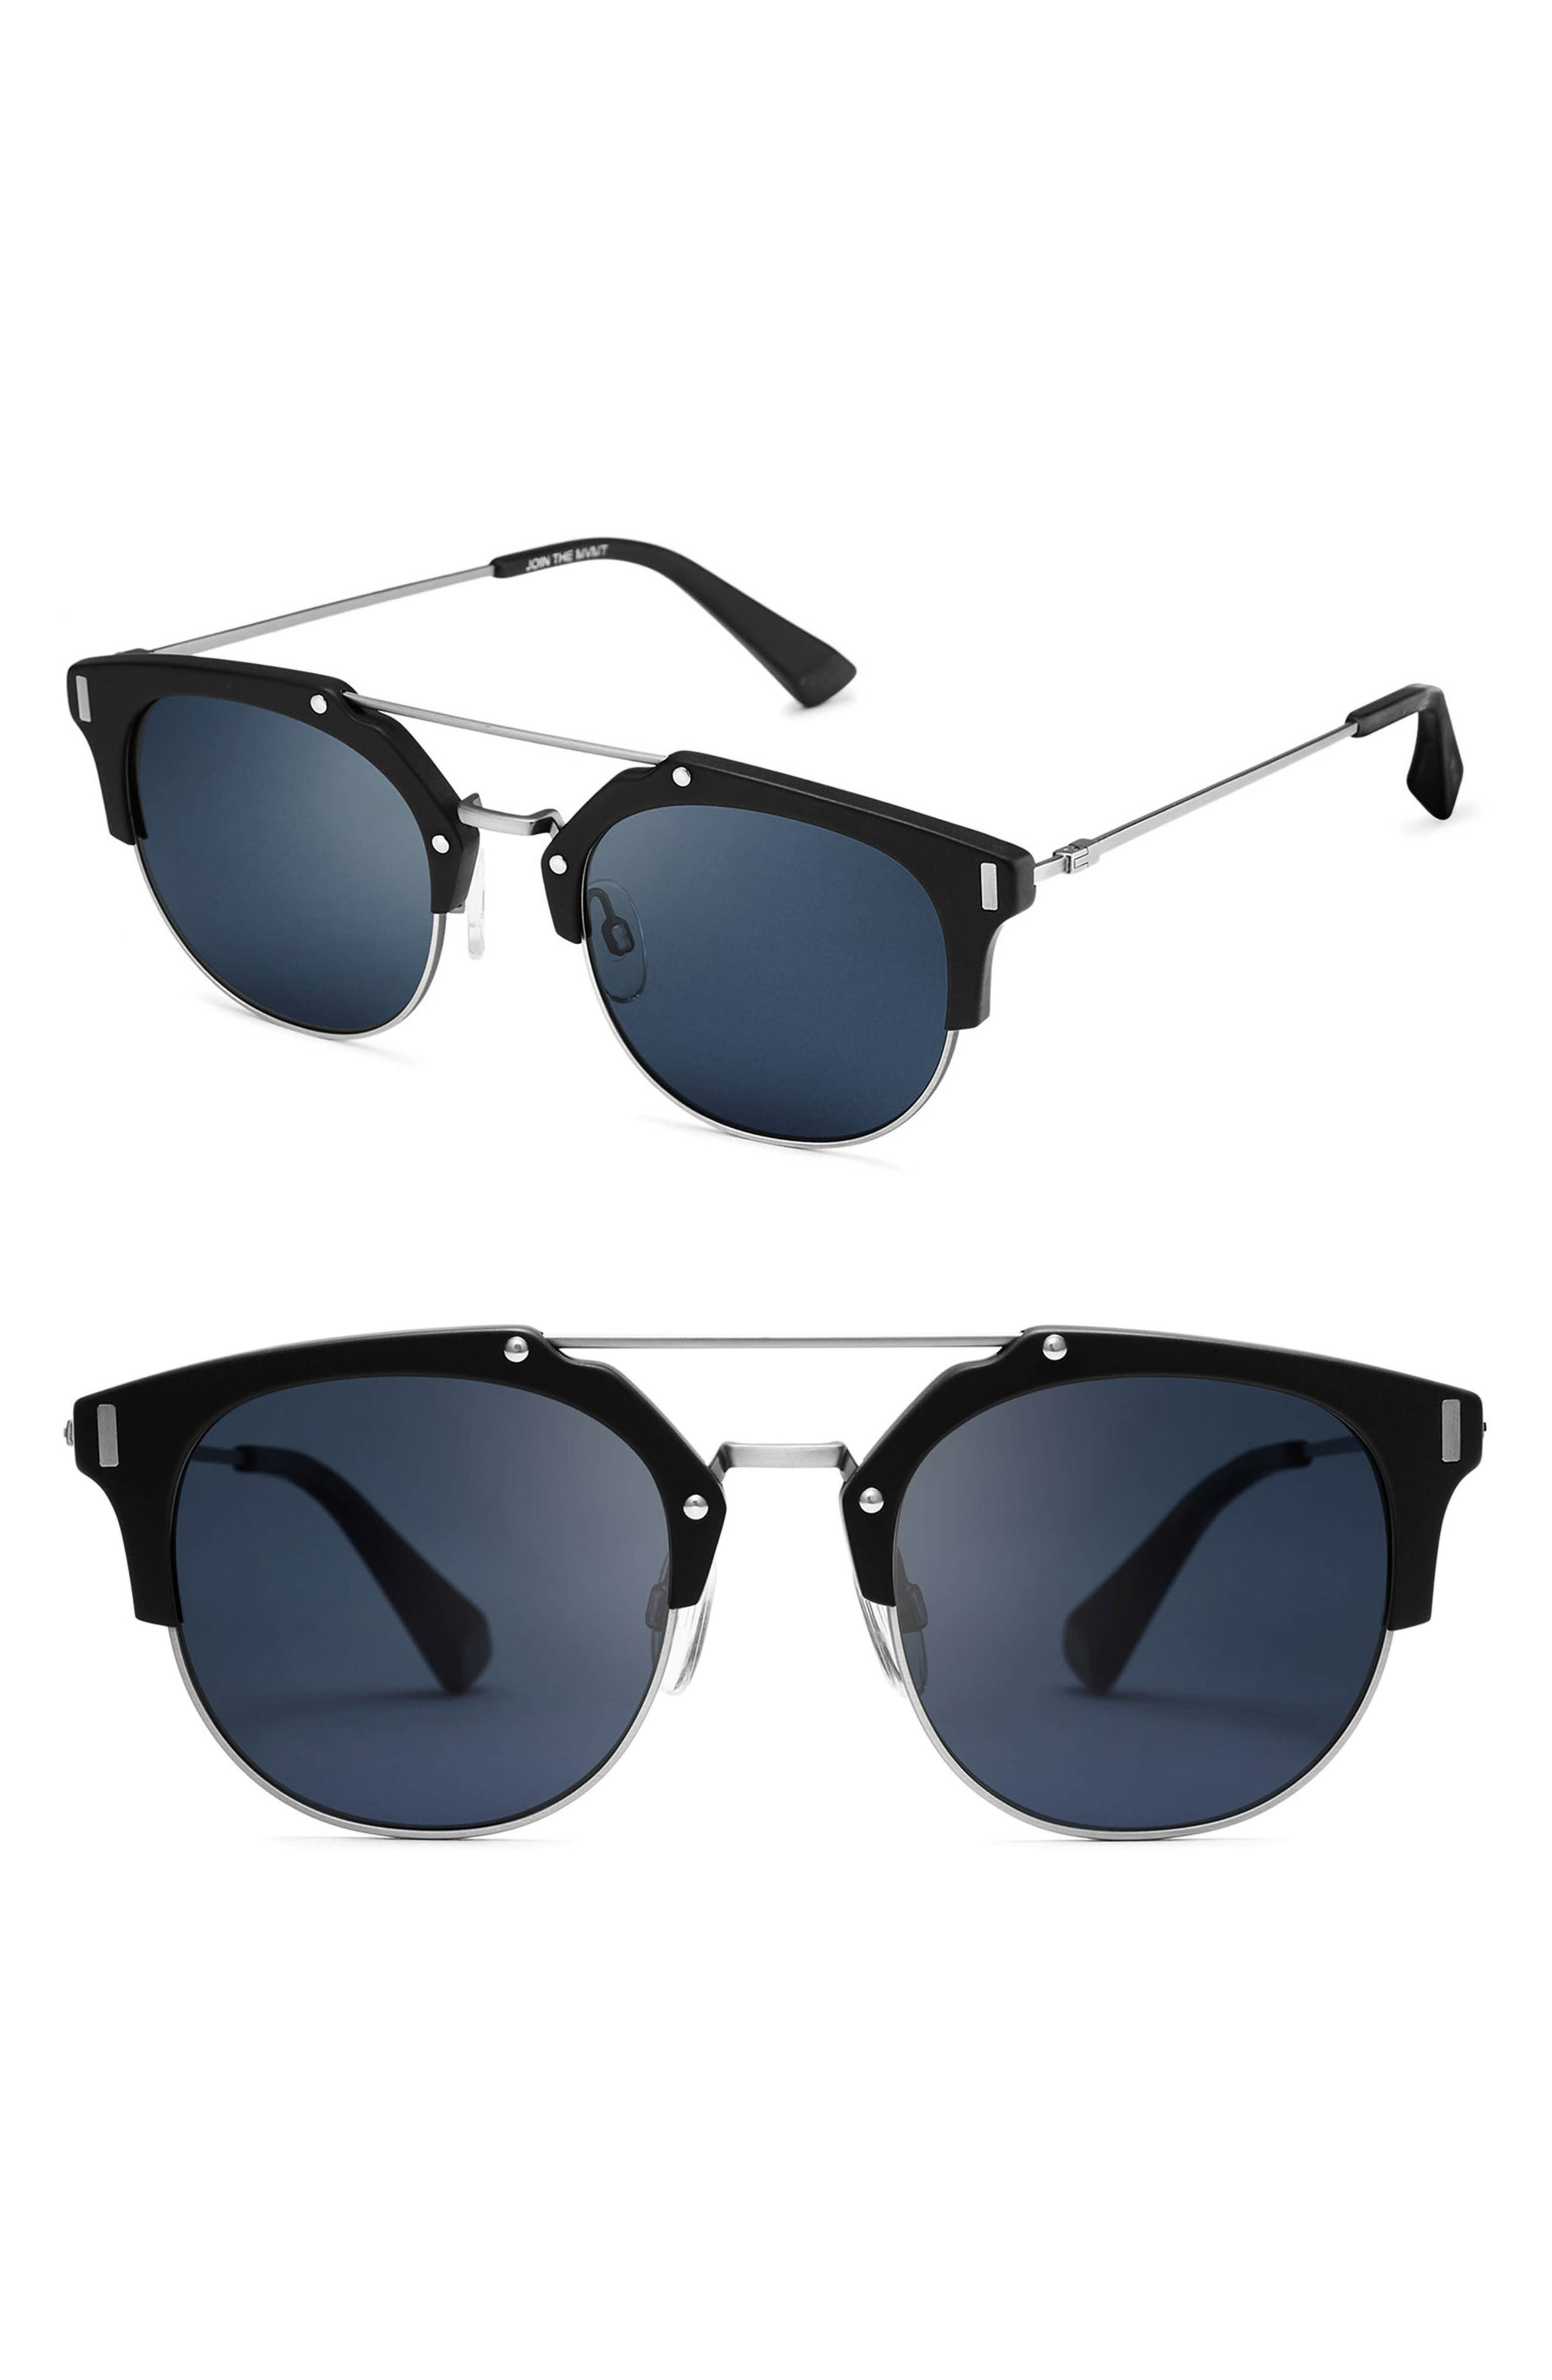 Weekend 51mm Polarized Sunglasses,                             Main thumbnail 1, color,                             Matte Black